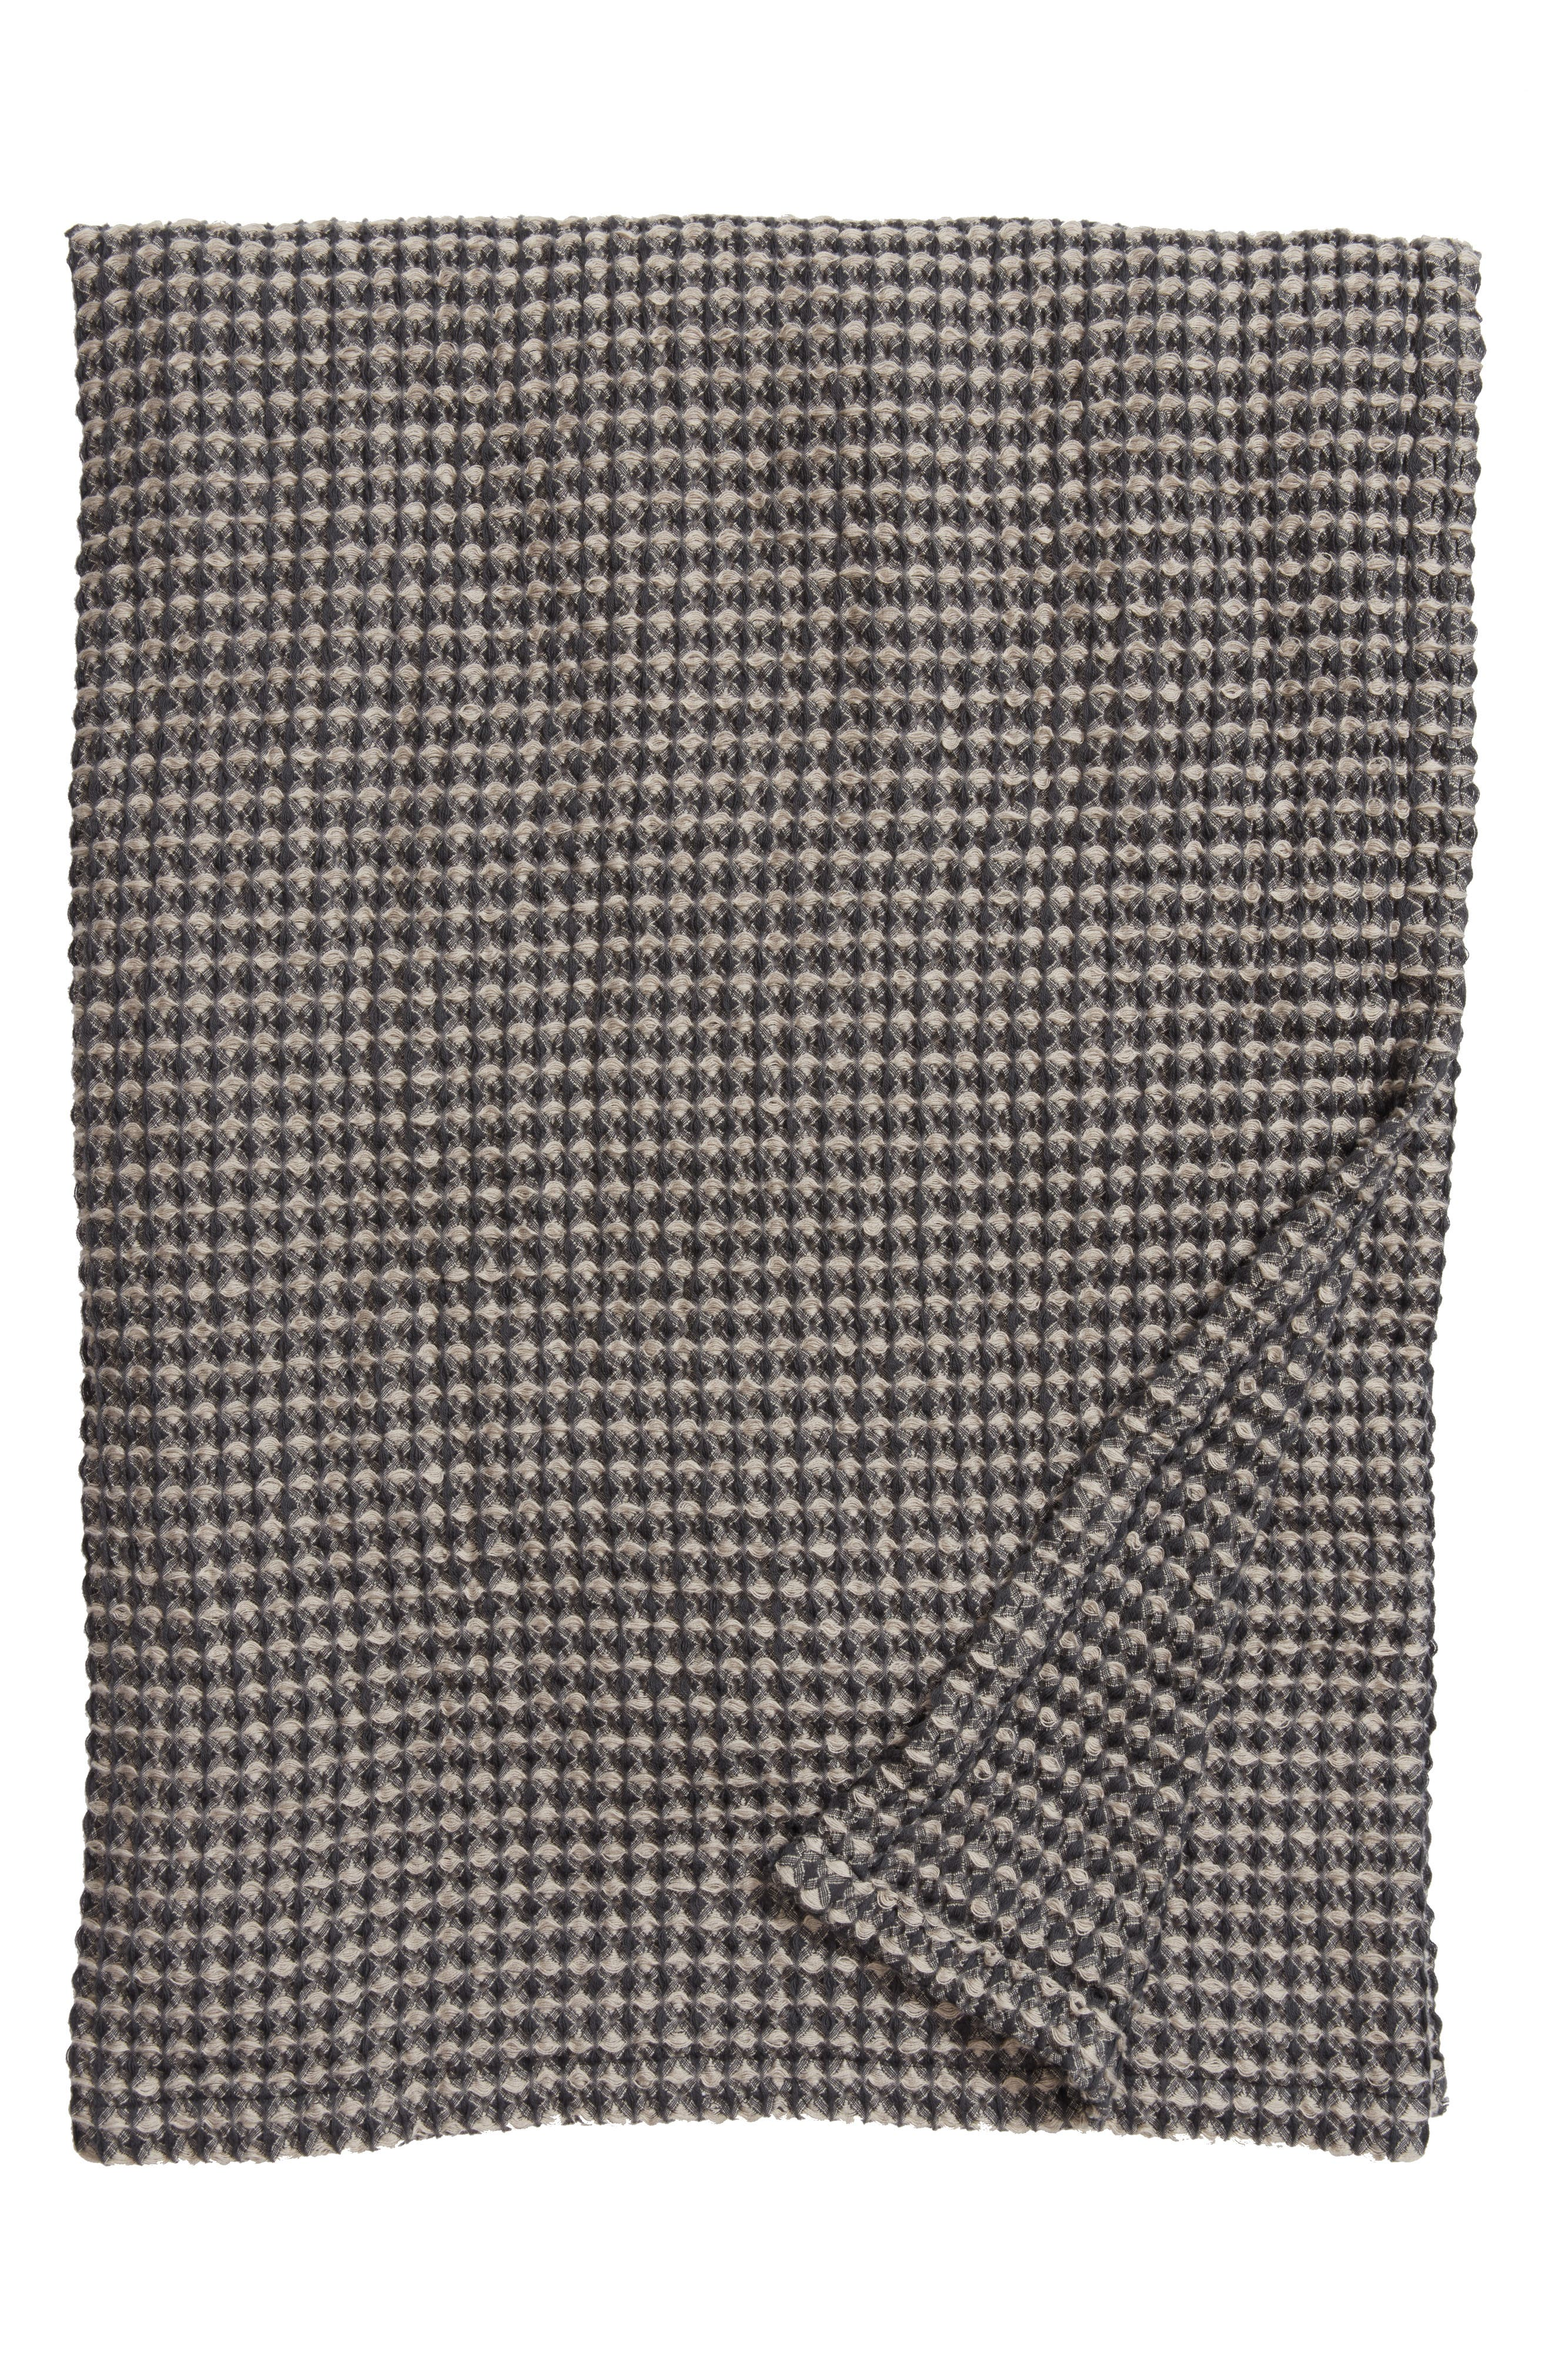 Waffle Knit Blanket,                         Main,                         color, Grey Onyx